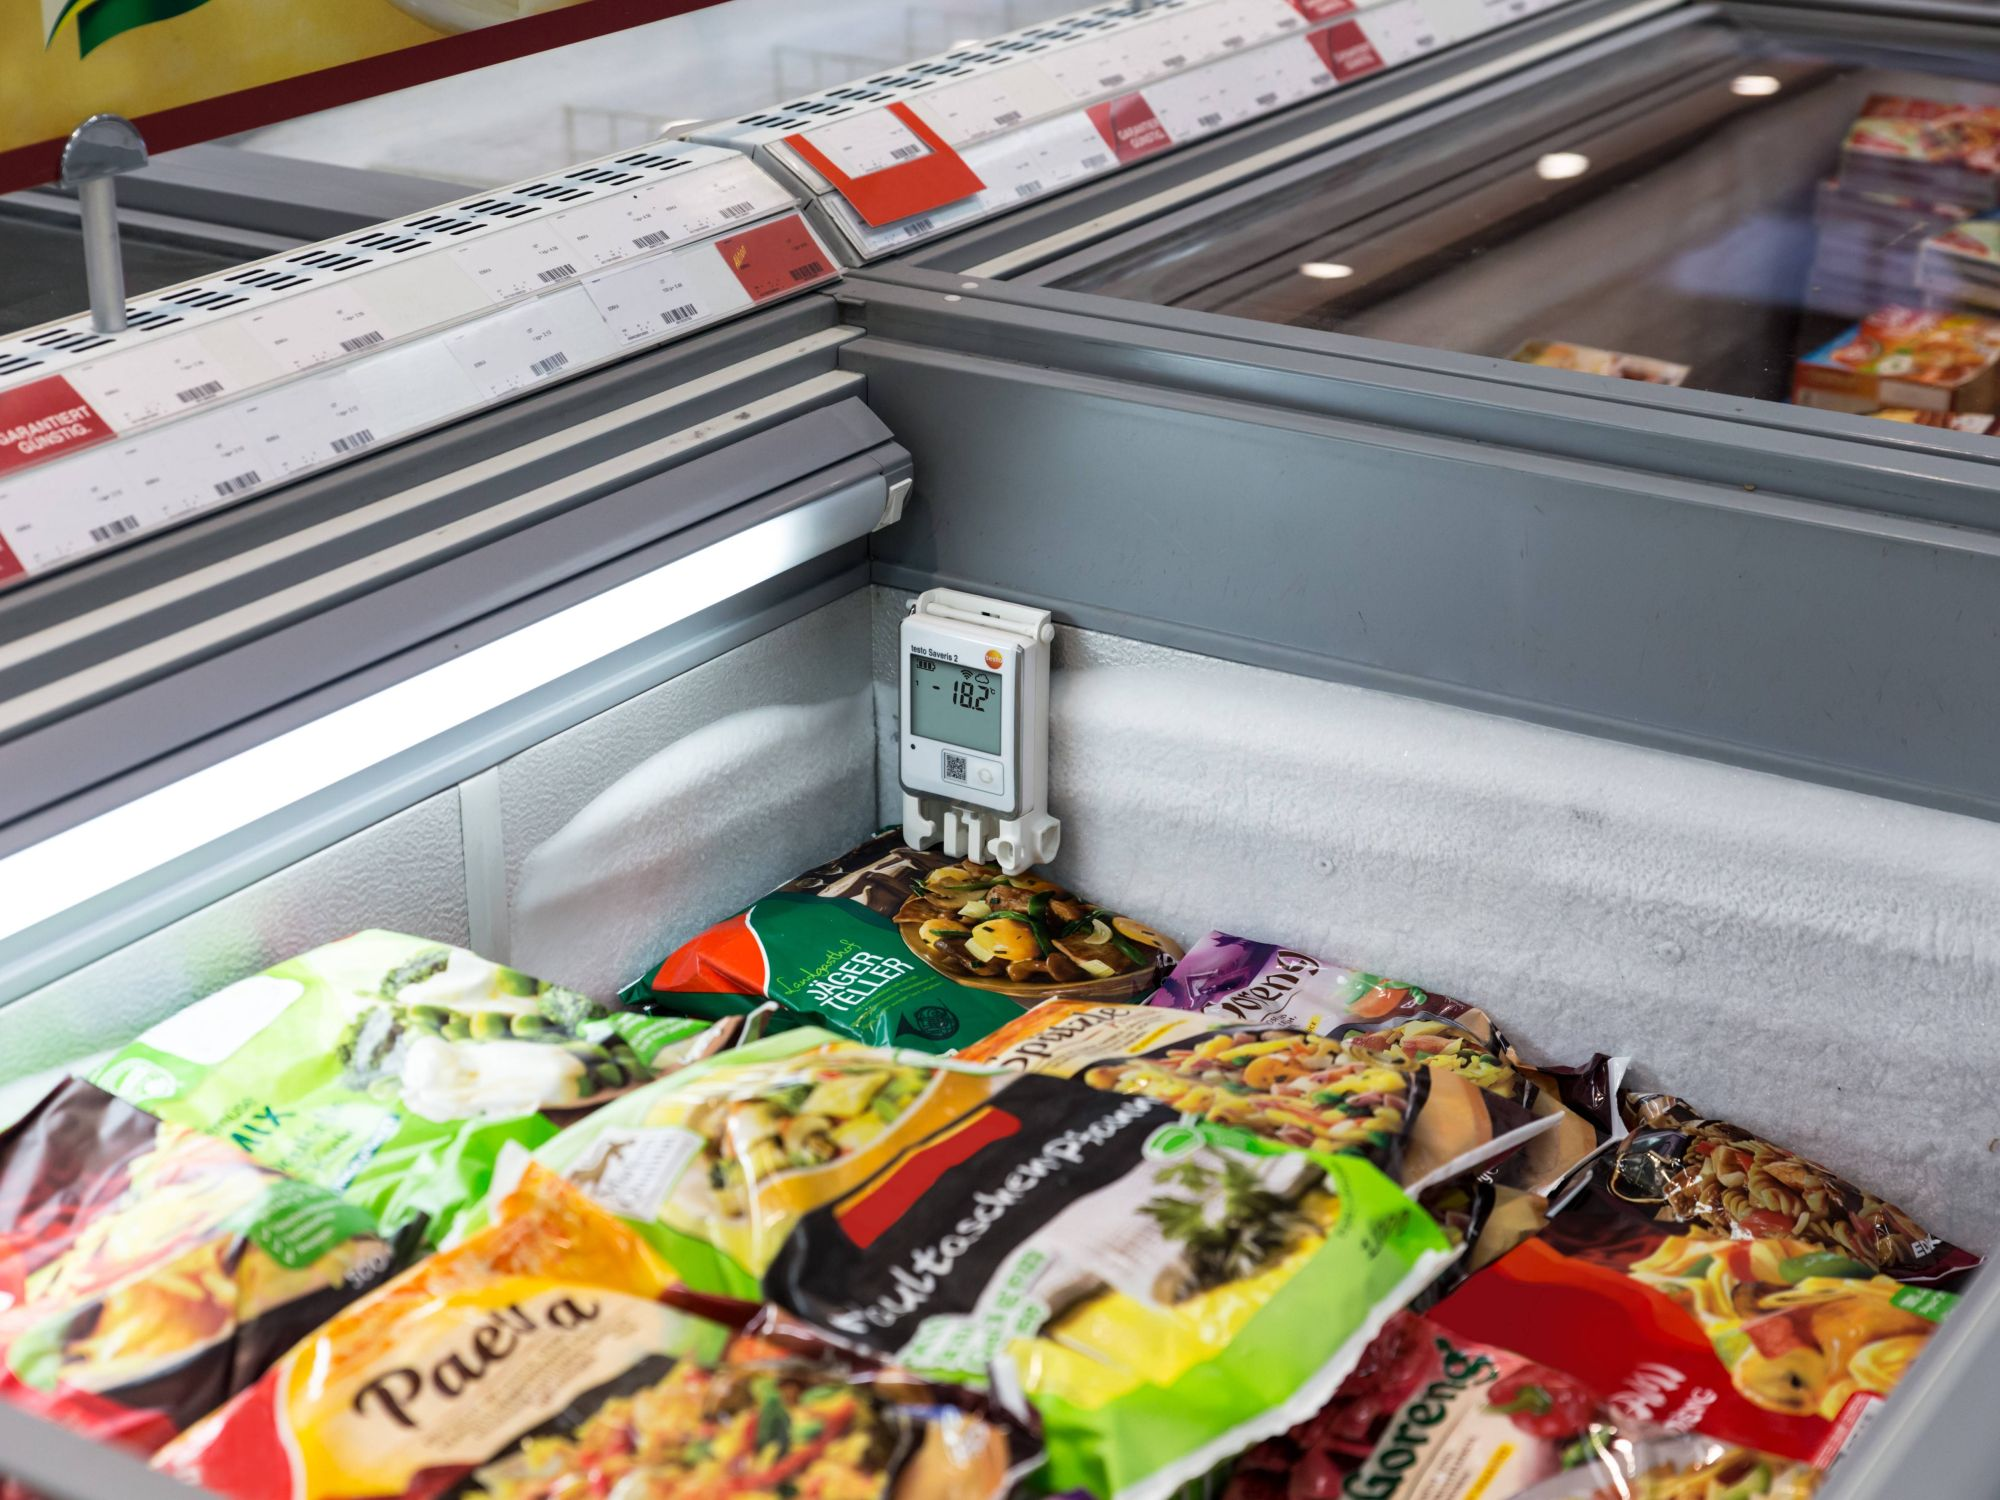 Monitoring temperature in a supermarket - Advantages